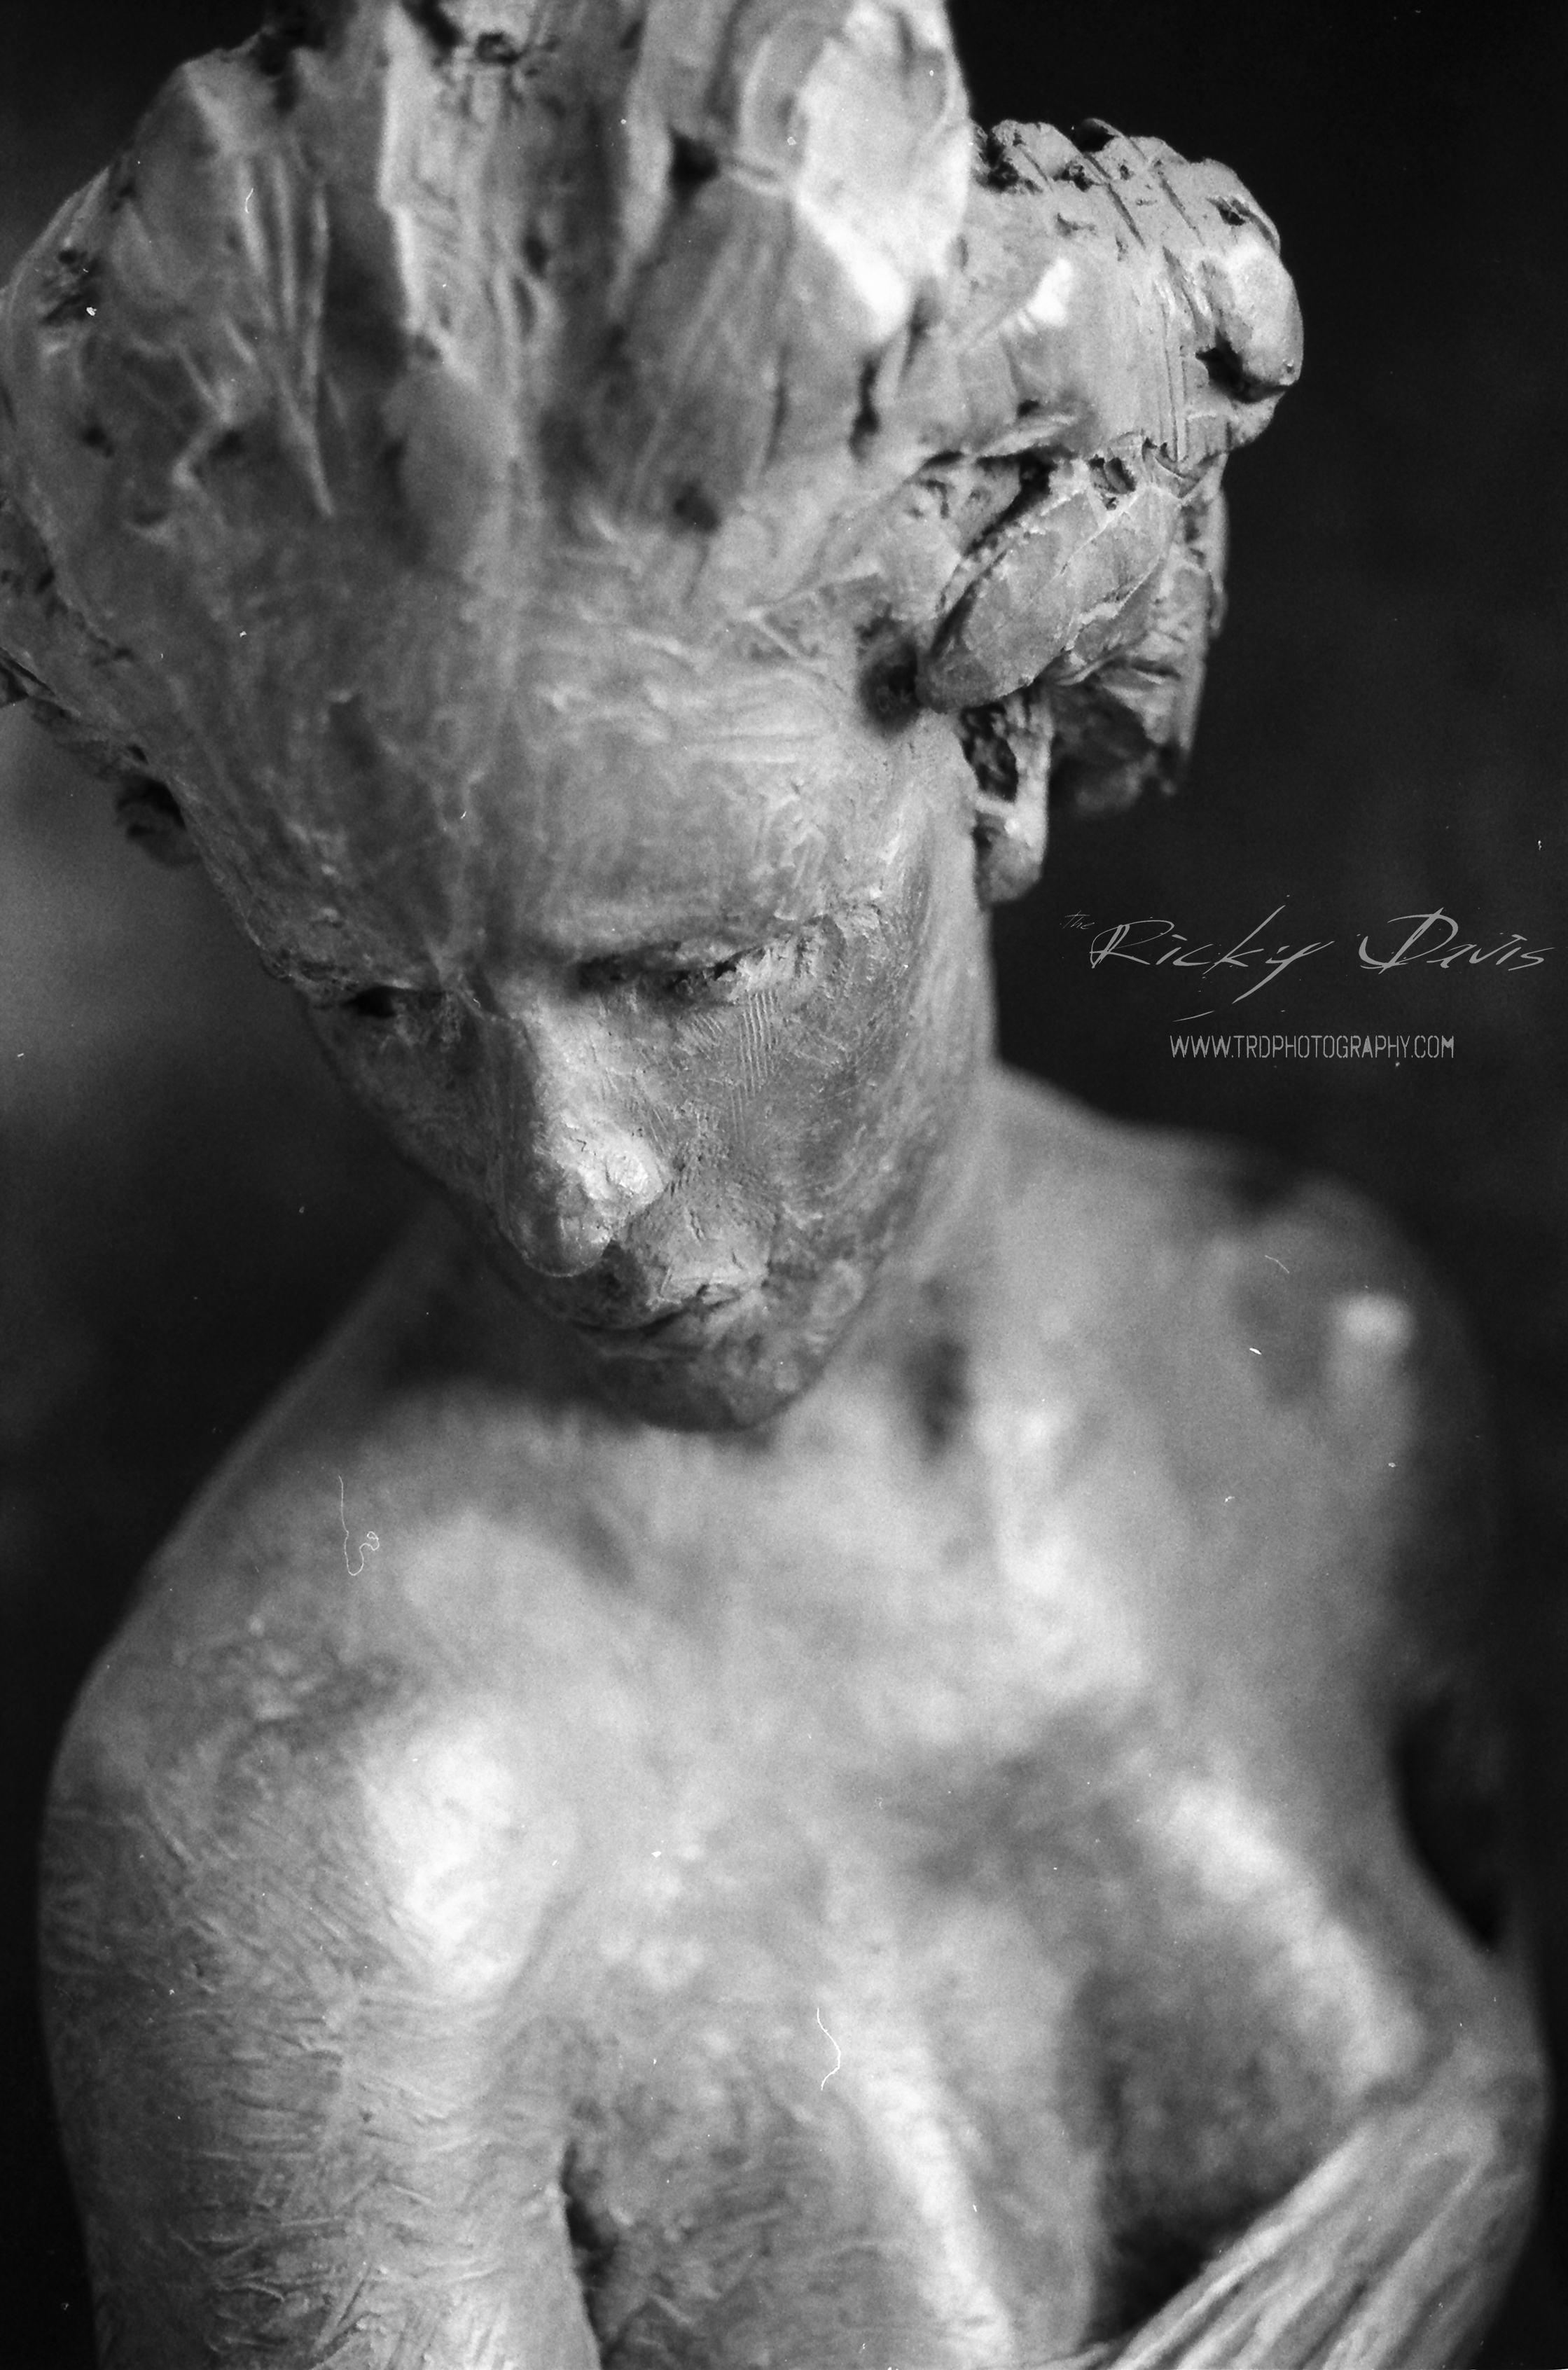 Sculpture in Chattanooga, TN - Film - Expired Neopan SS - Camera - Minolta XG 1 - Photographer Ricky Davis